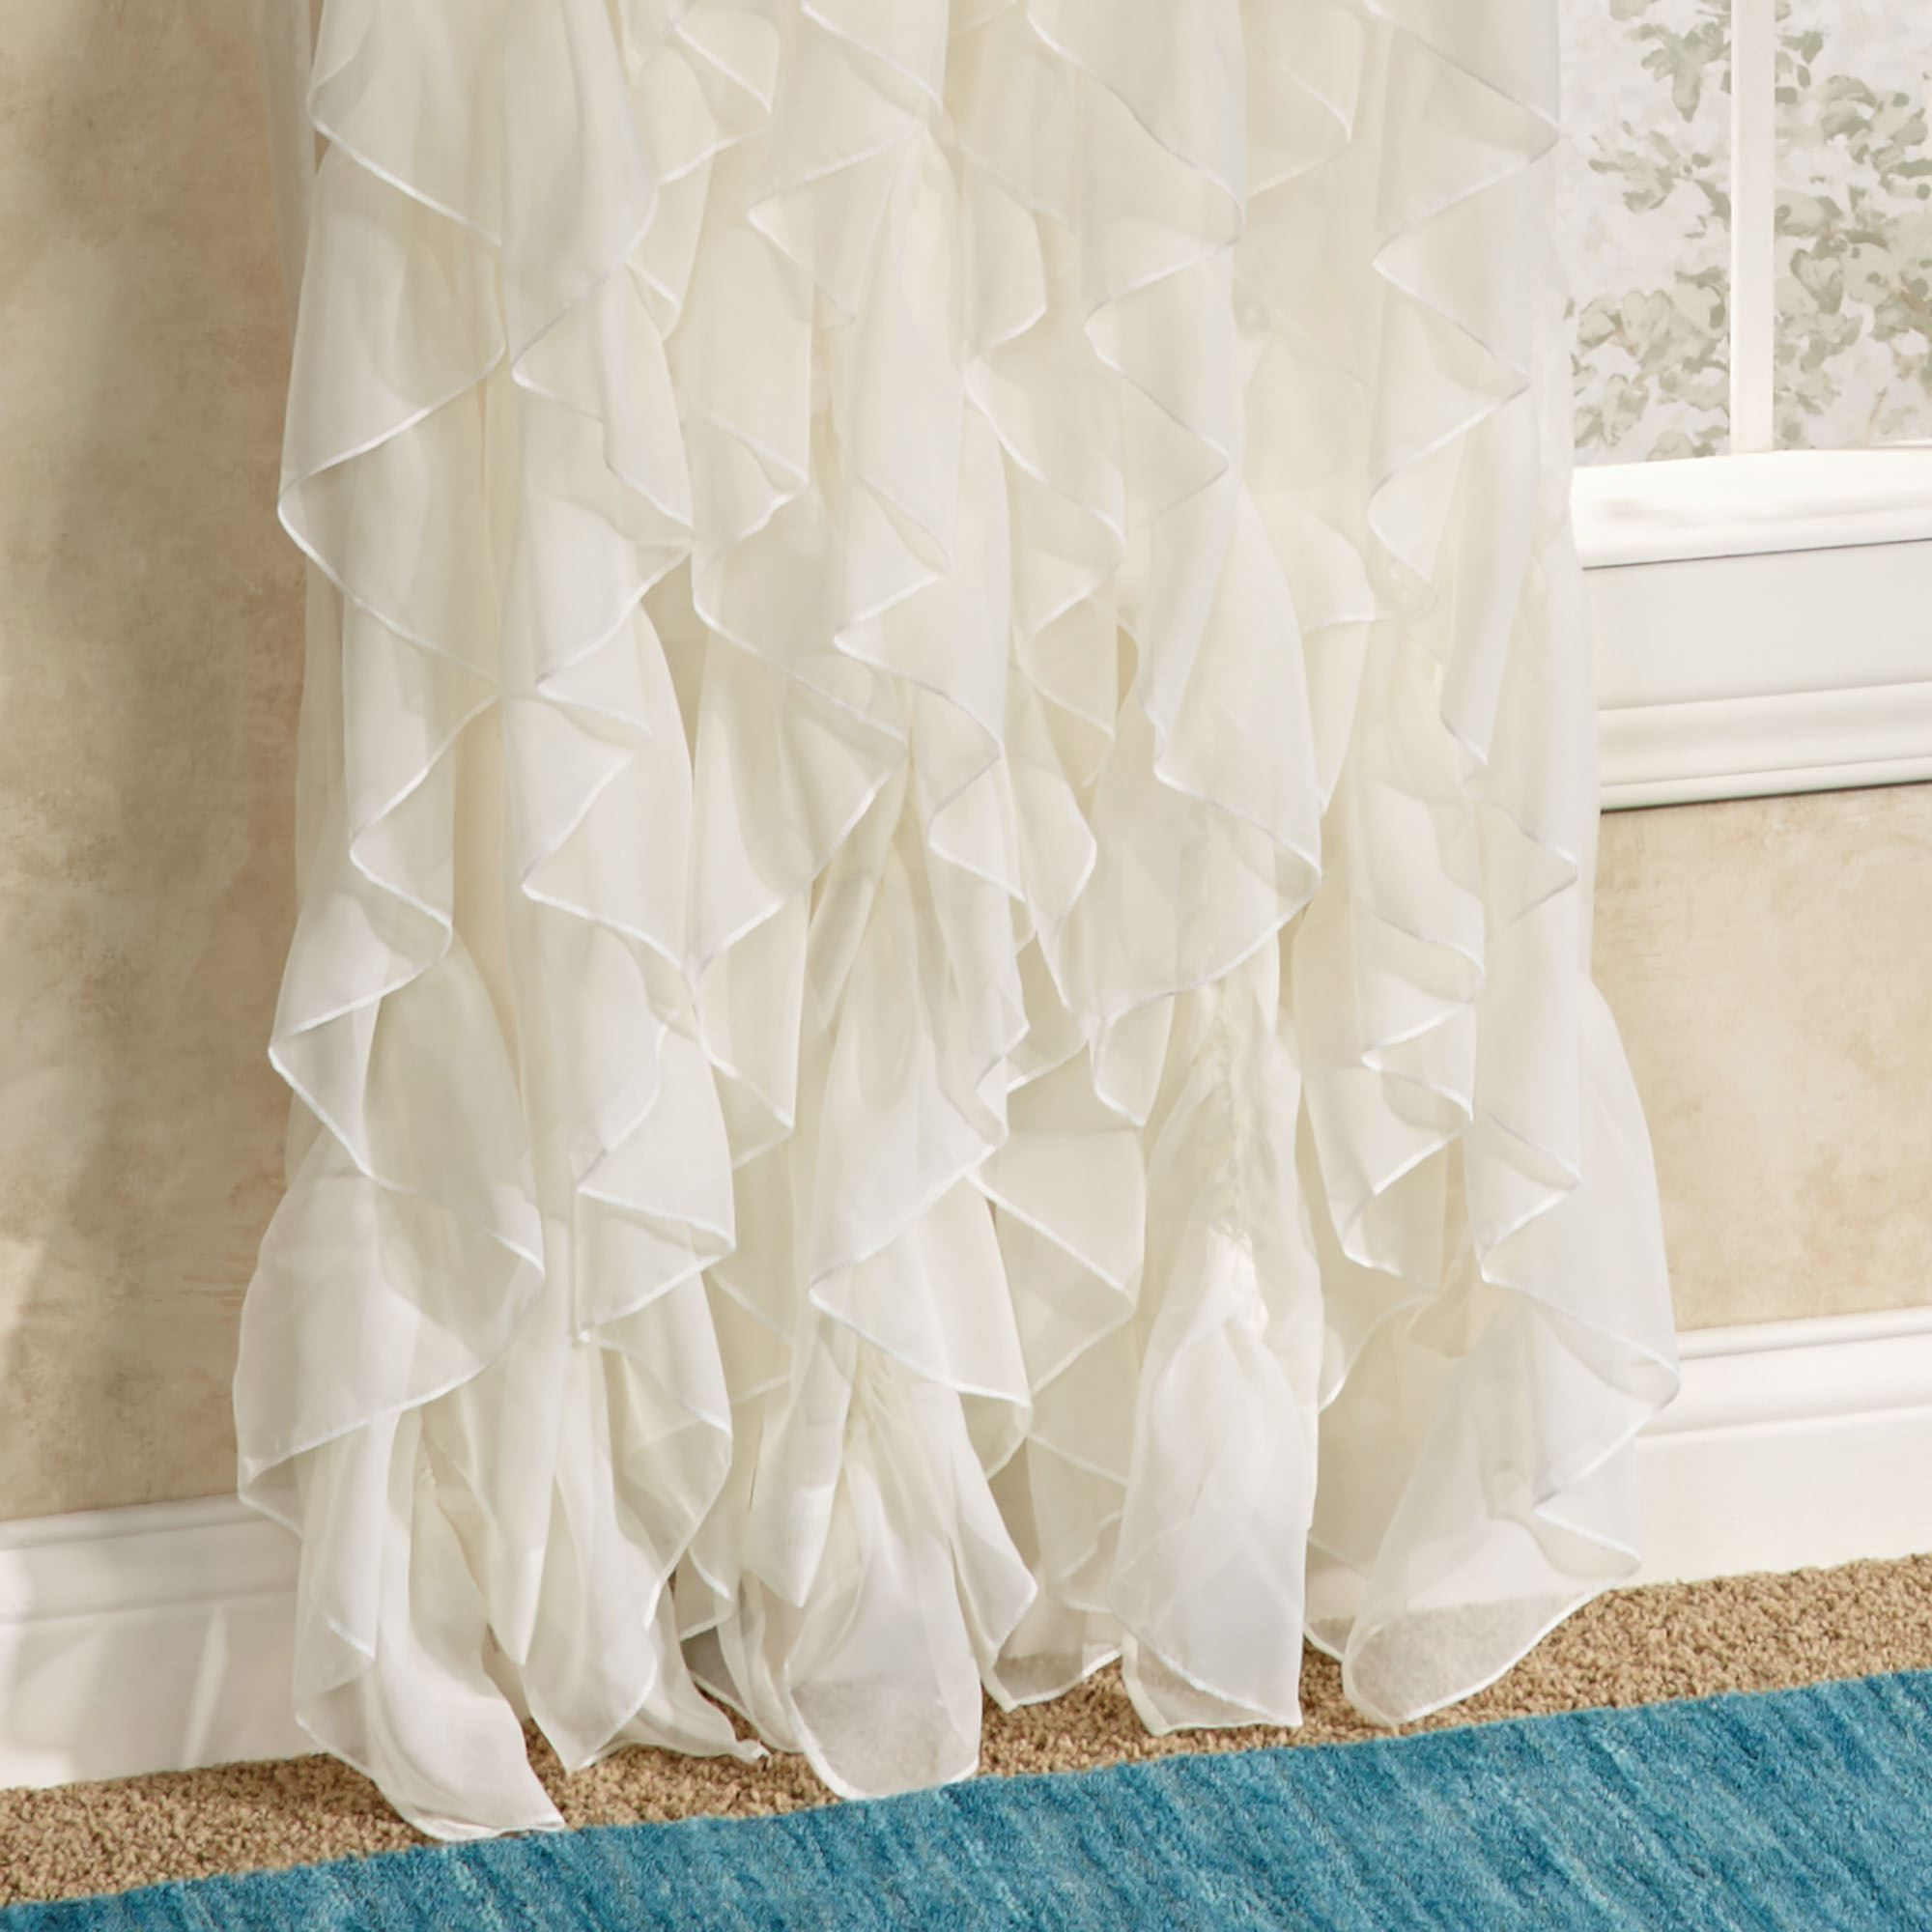 Cascade Sheer Voile Ruffled Window Treatment Throughout Sheer Voile Ruffled Tier Window Curtain Panels (View 1 of 20)